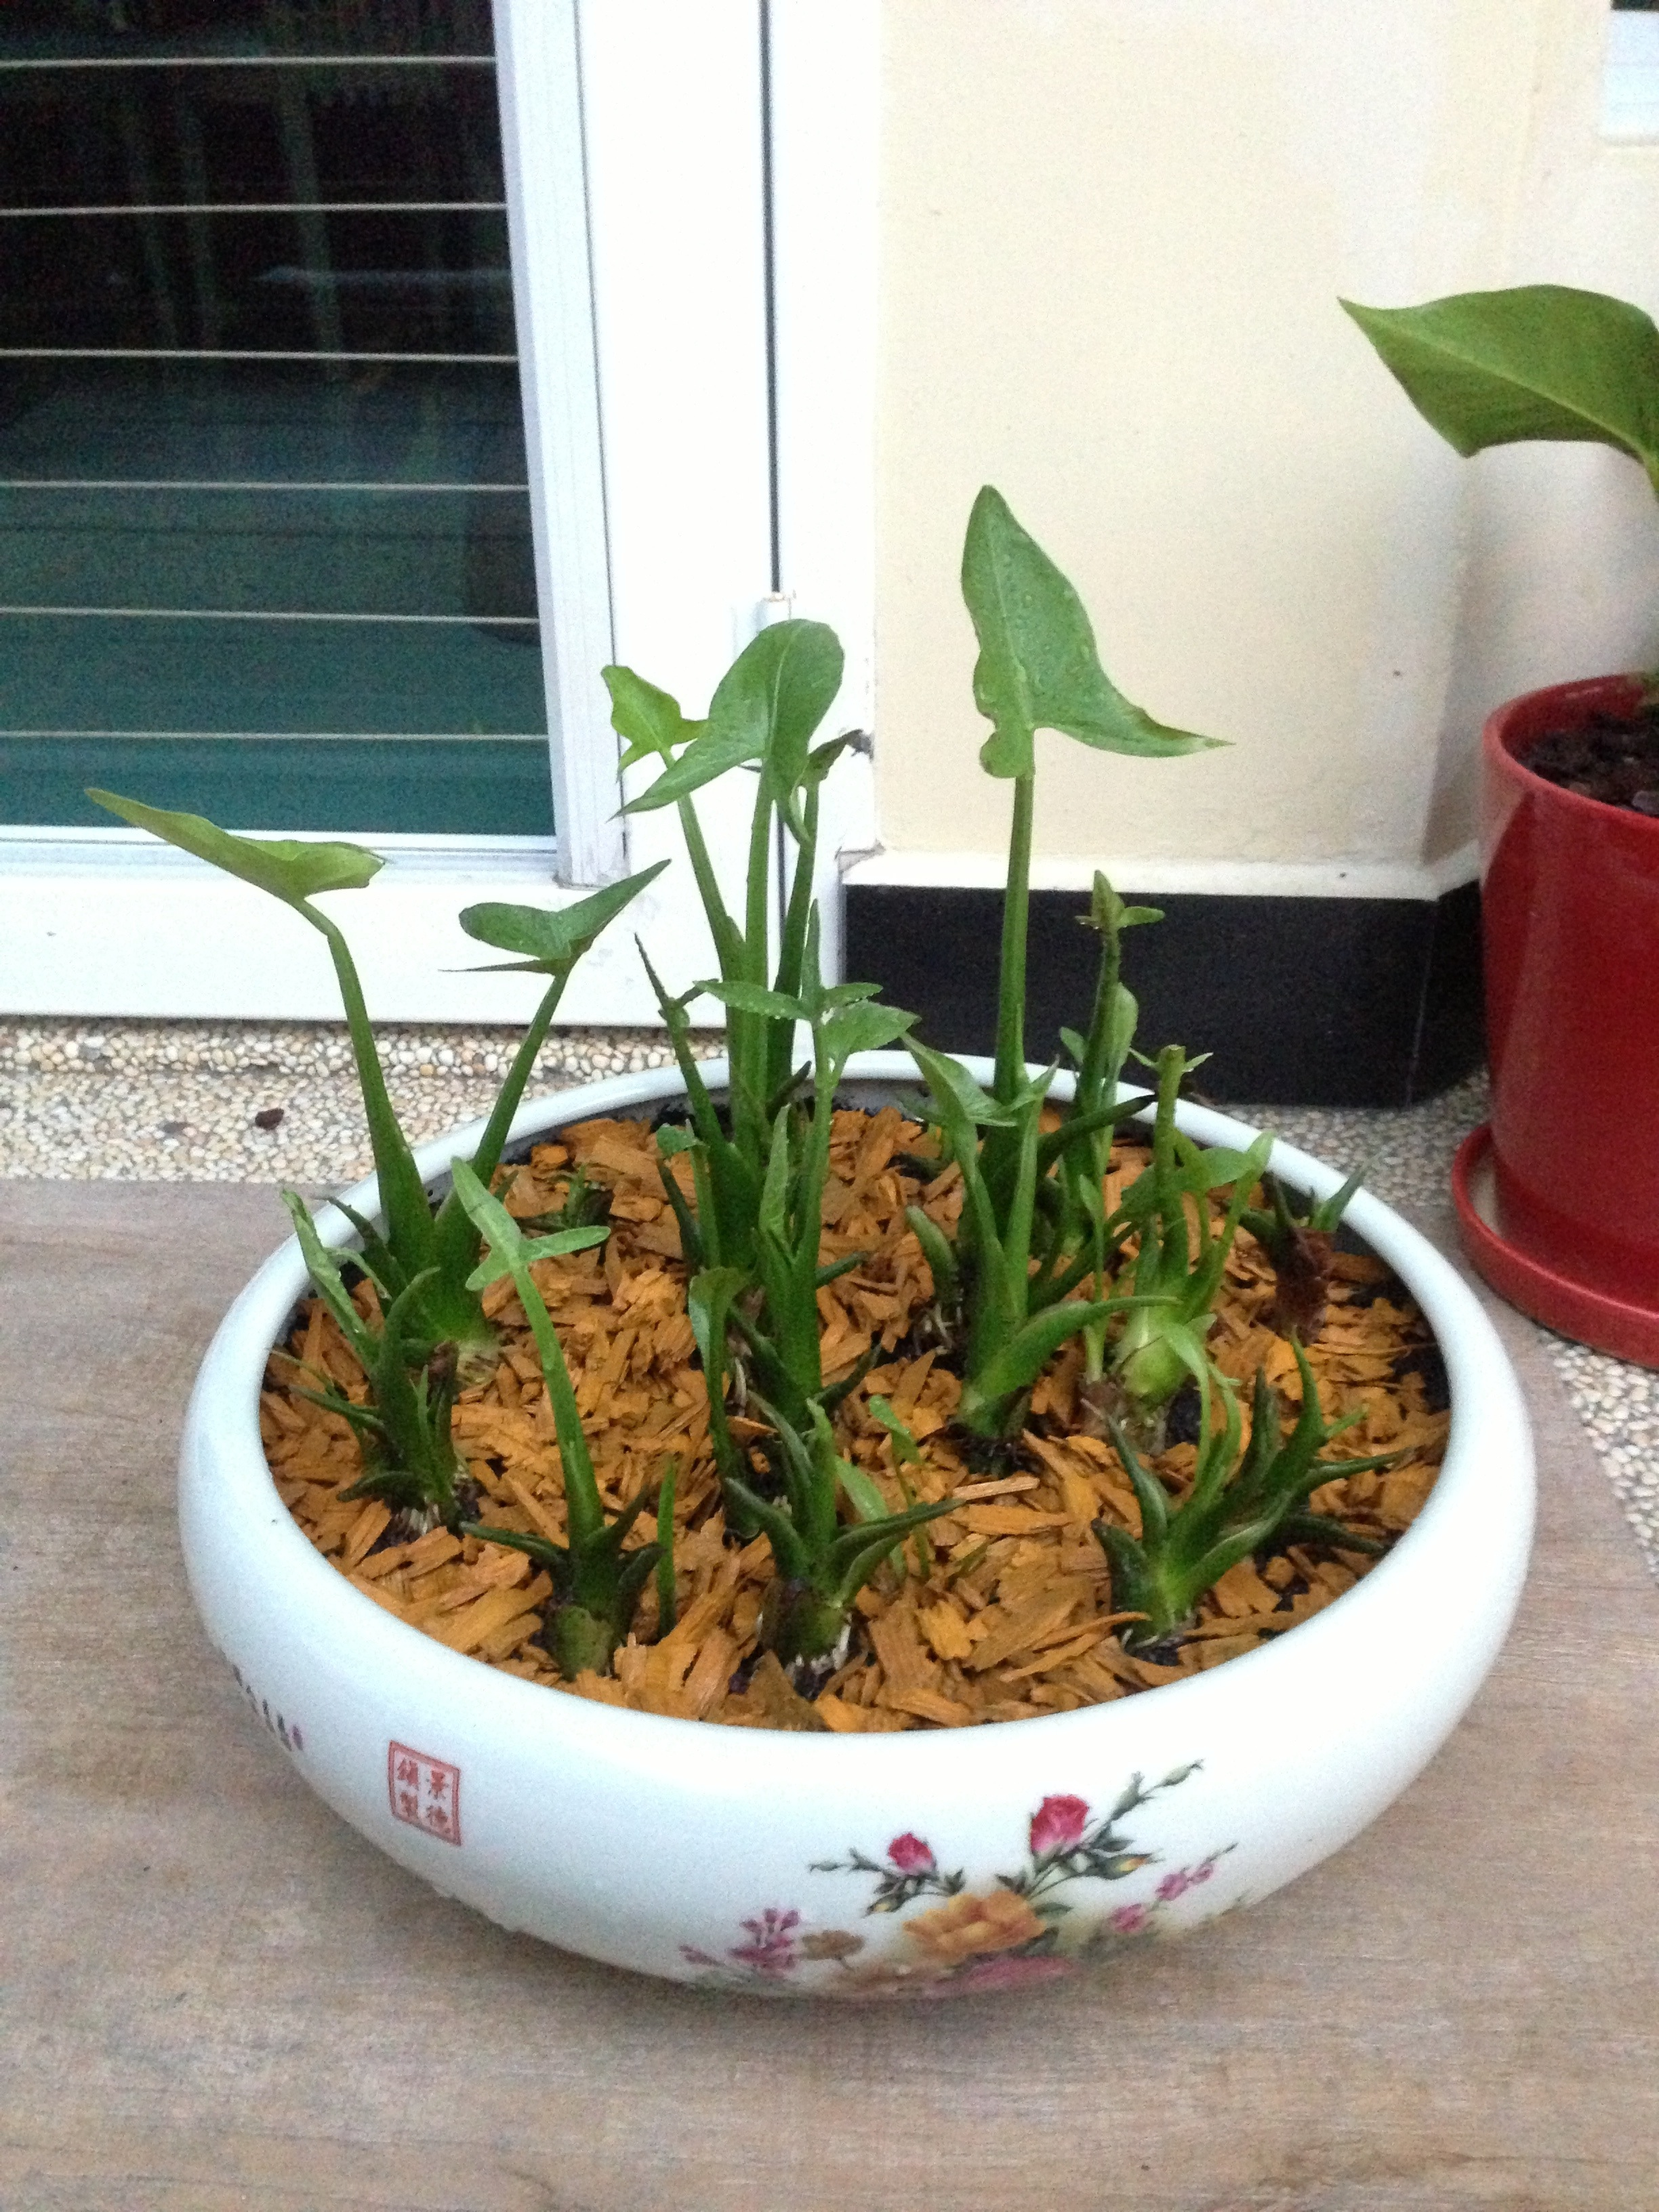 Best Kitchen Gallery: Chinese New Year Plants Gardening Is Fun of Arrowhead House Plant Names on rachelxblog.com